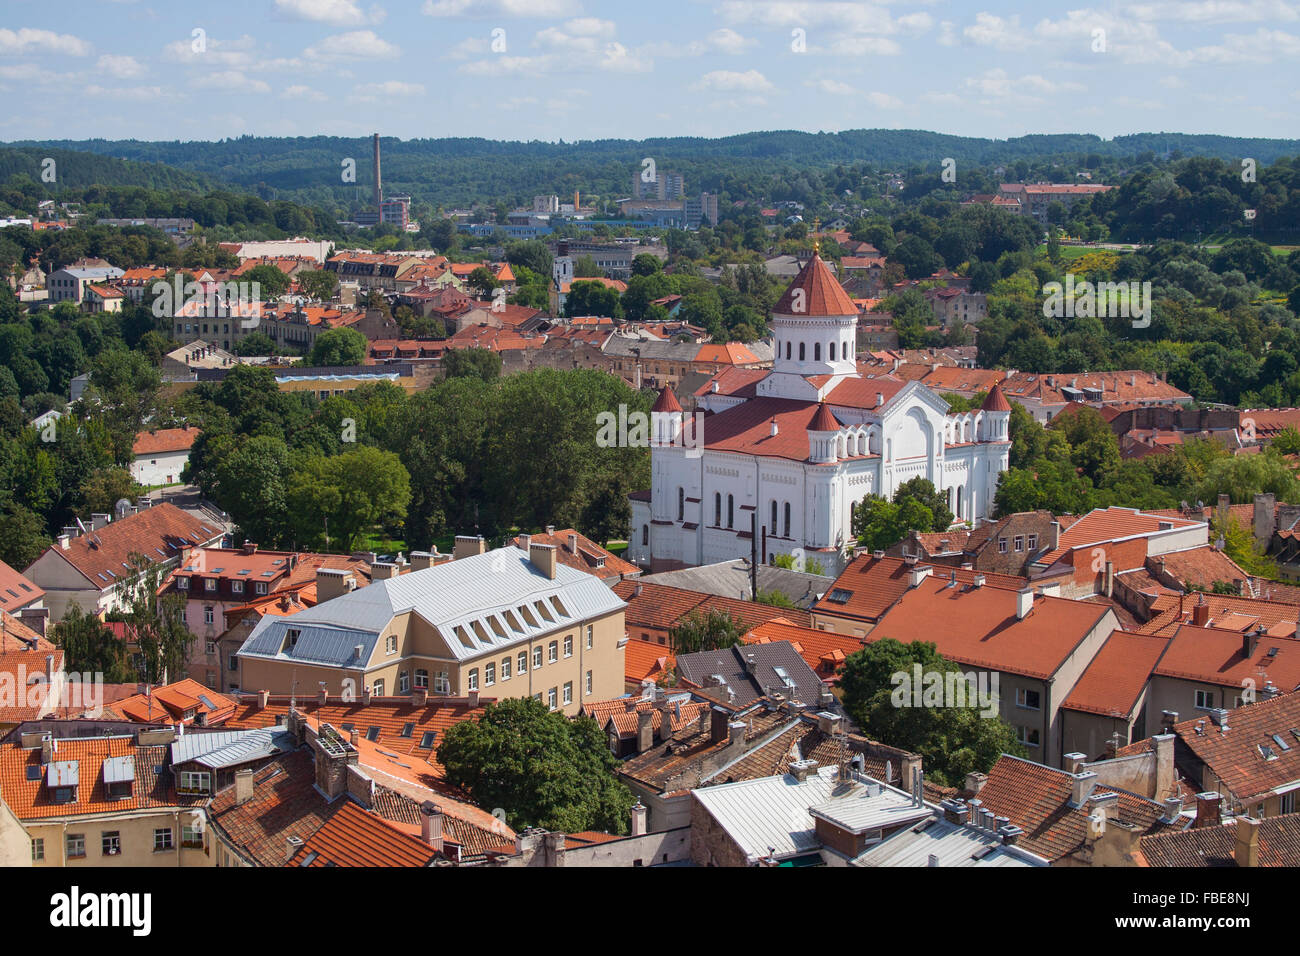 Overview of Orthodox Church of the Holy Mother of God and Uzupis district, Vilnius, Lithuania - Stock Image